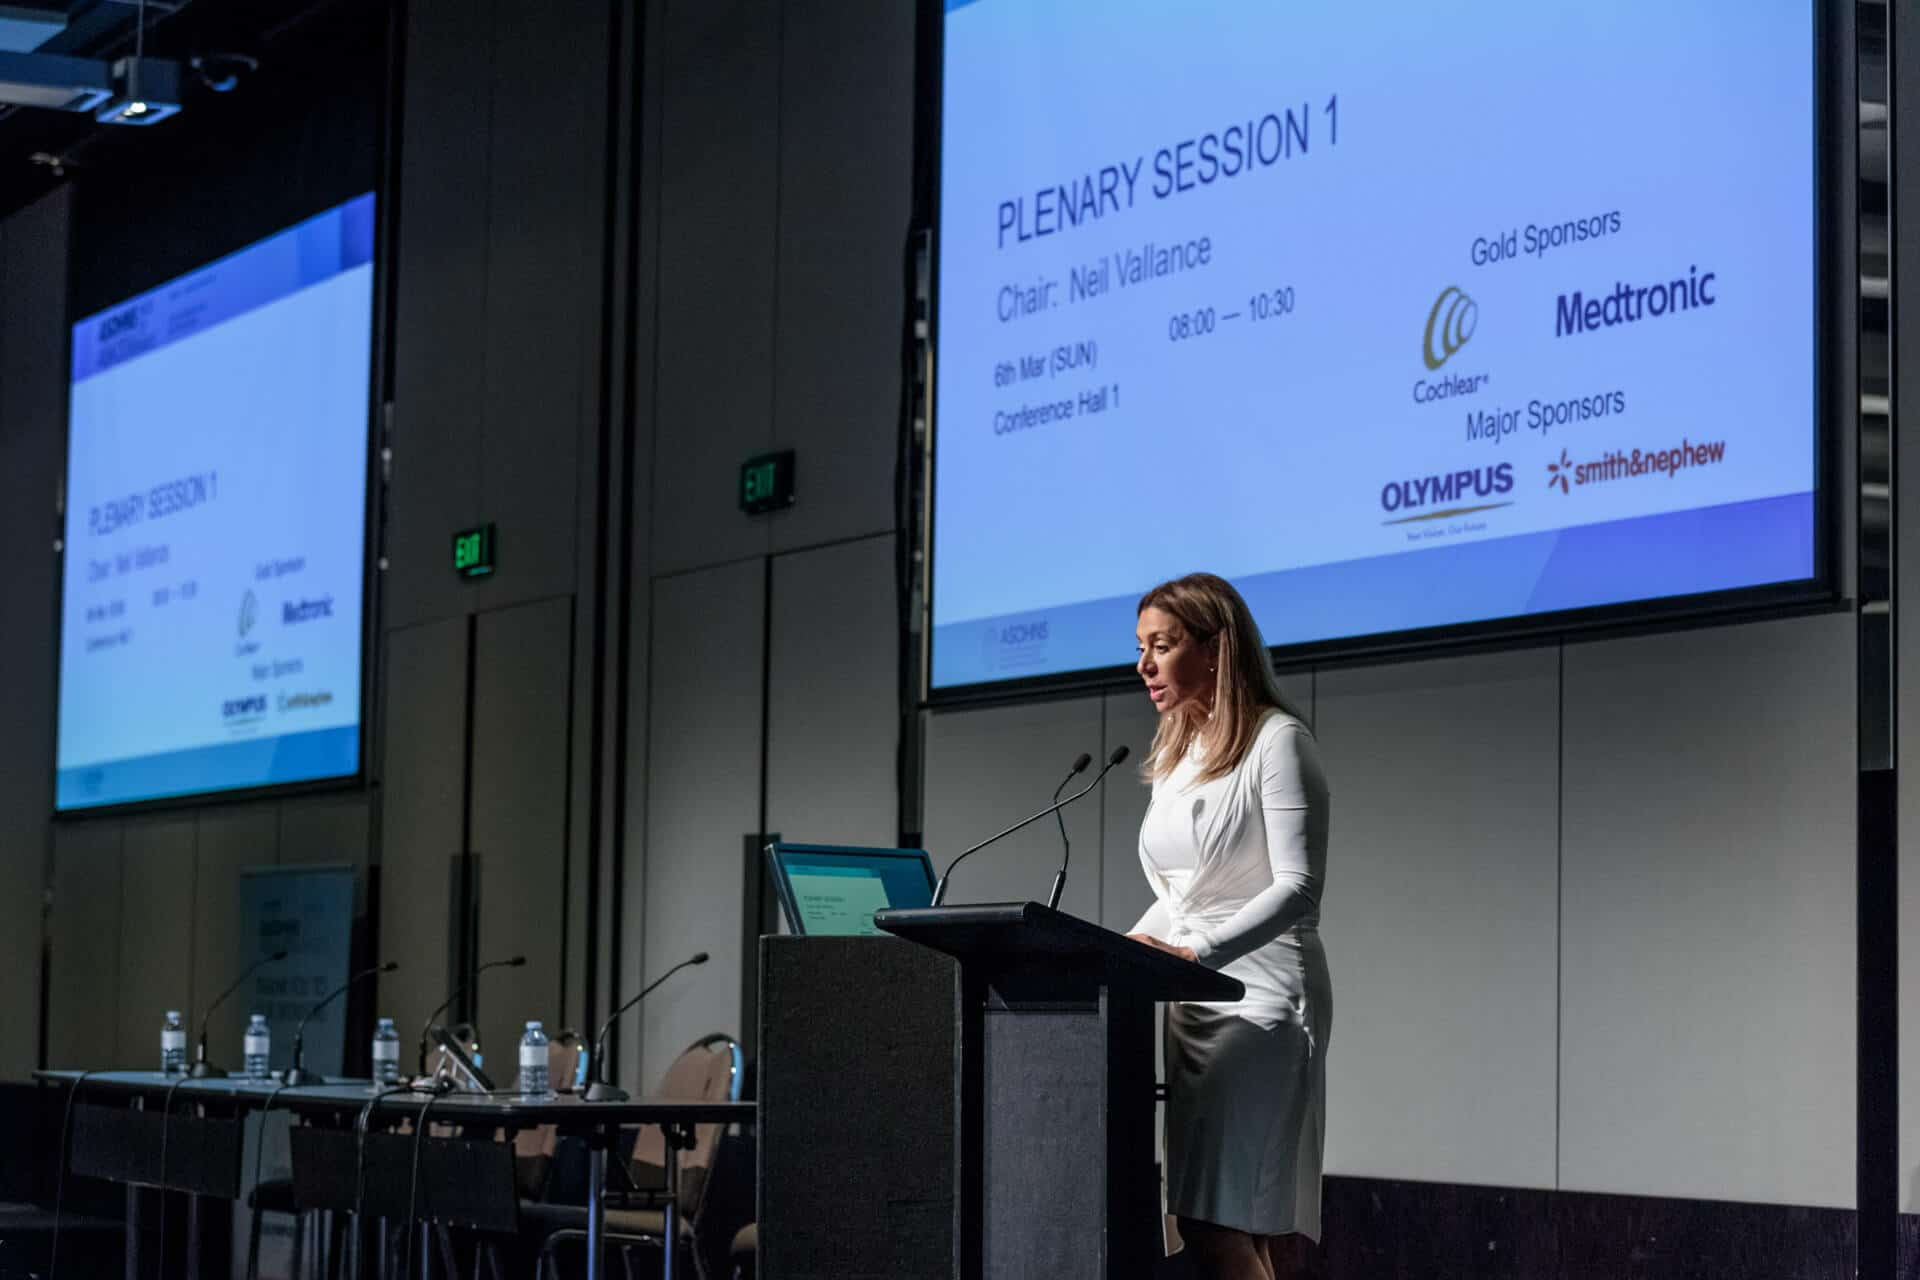 important speaker in front of two large projector screens event photograph from asohns crown conference event in melbourne